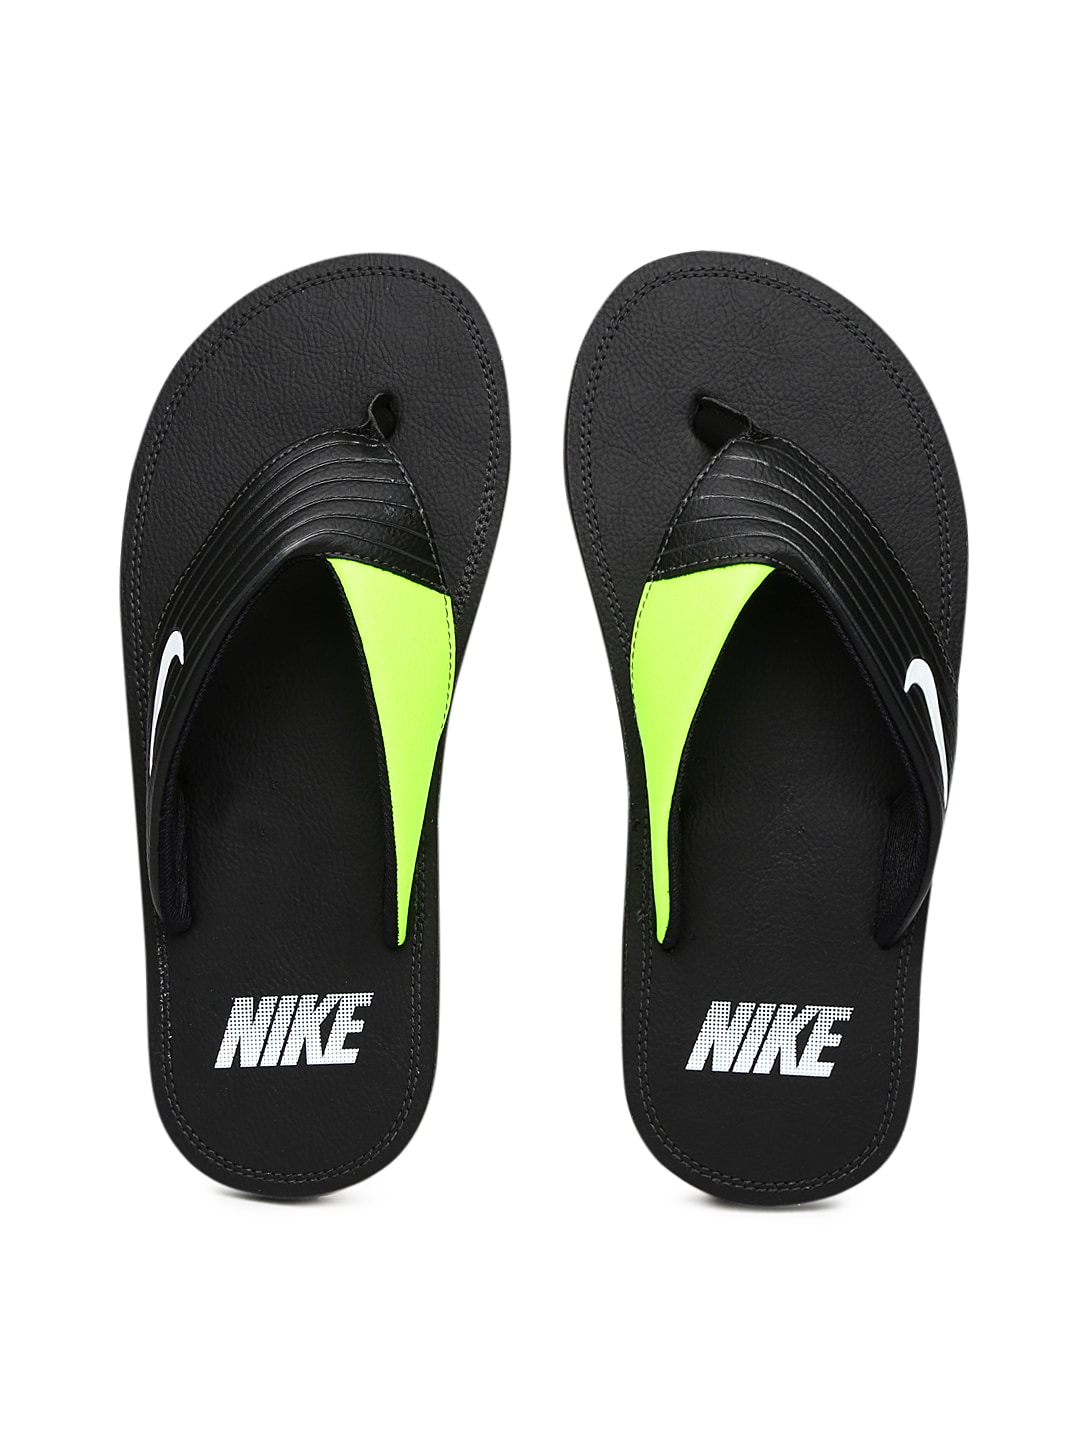 fb3fe2aa3295d7 Nike 636165-018 Men Black And Neon Green Chroma Thong Iii Flip Flops- Price  in India